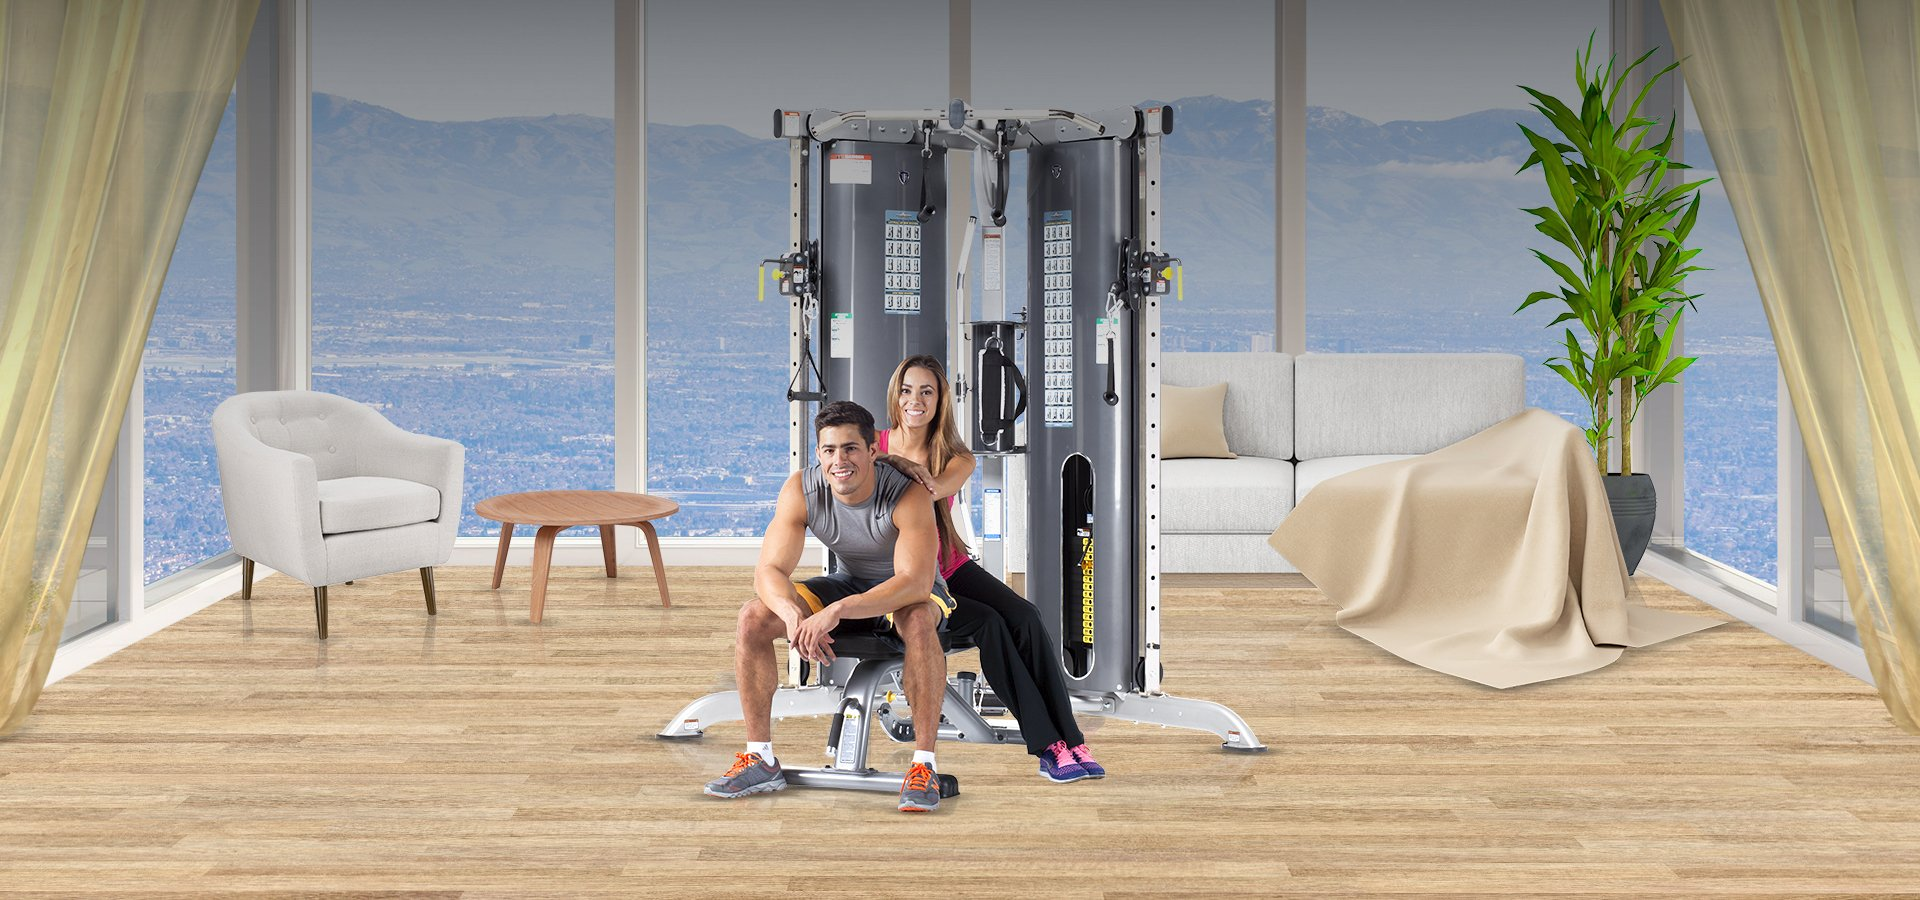 Residential Fitness Equipment by TuffStuff